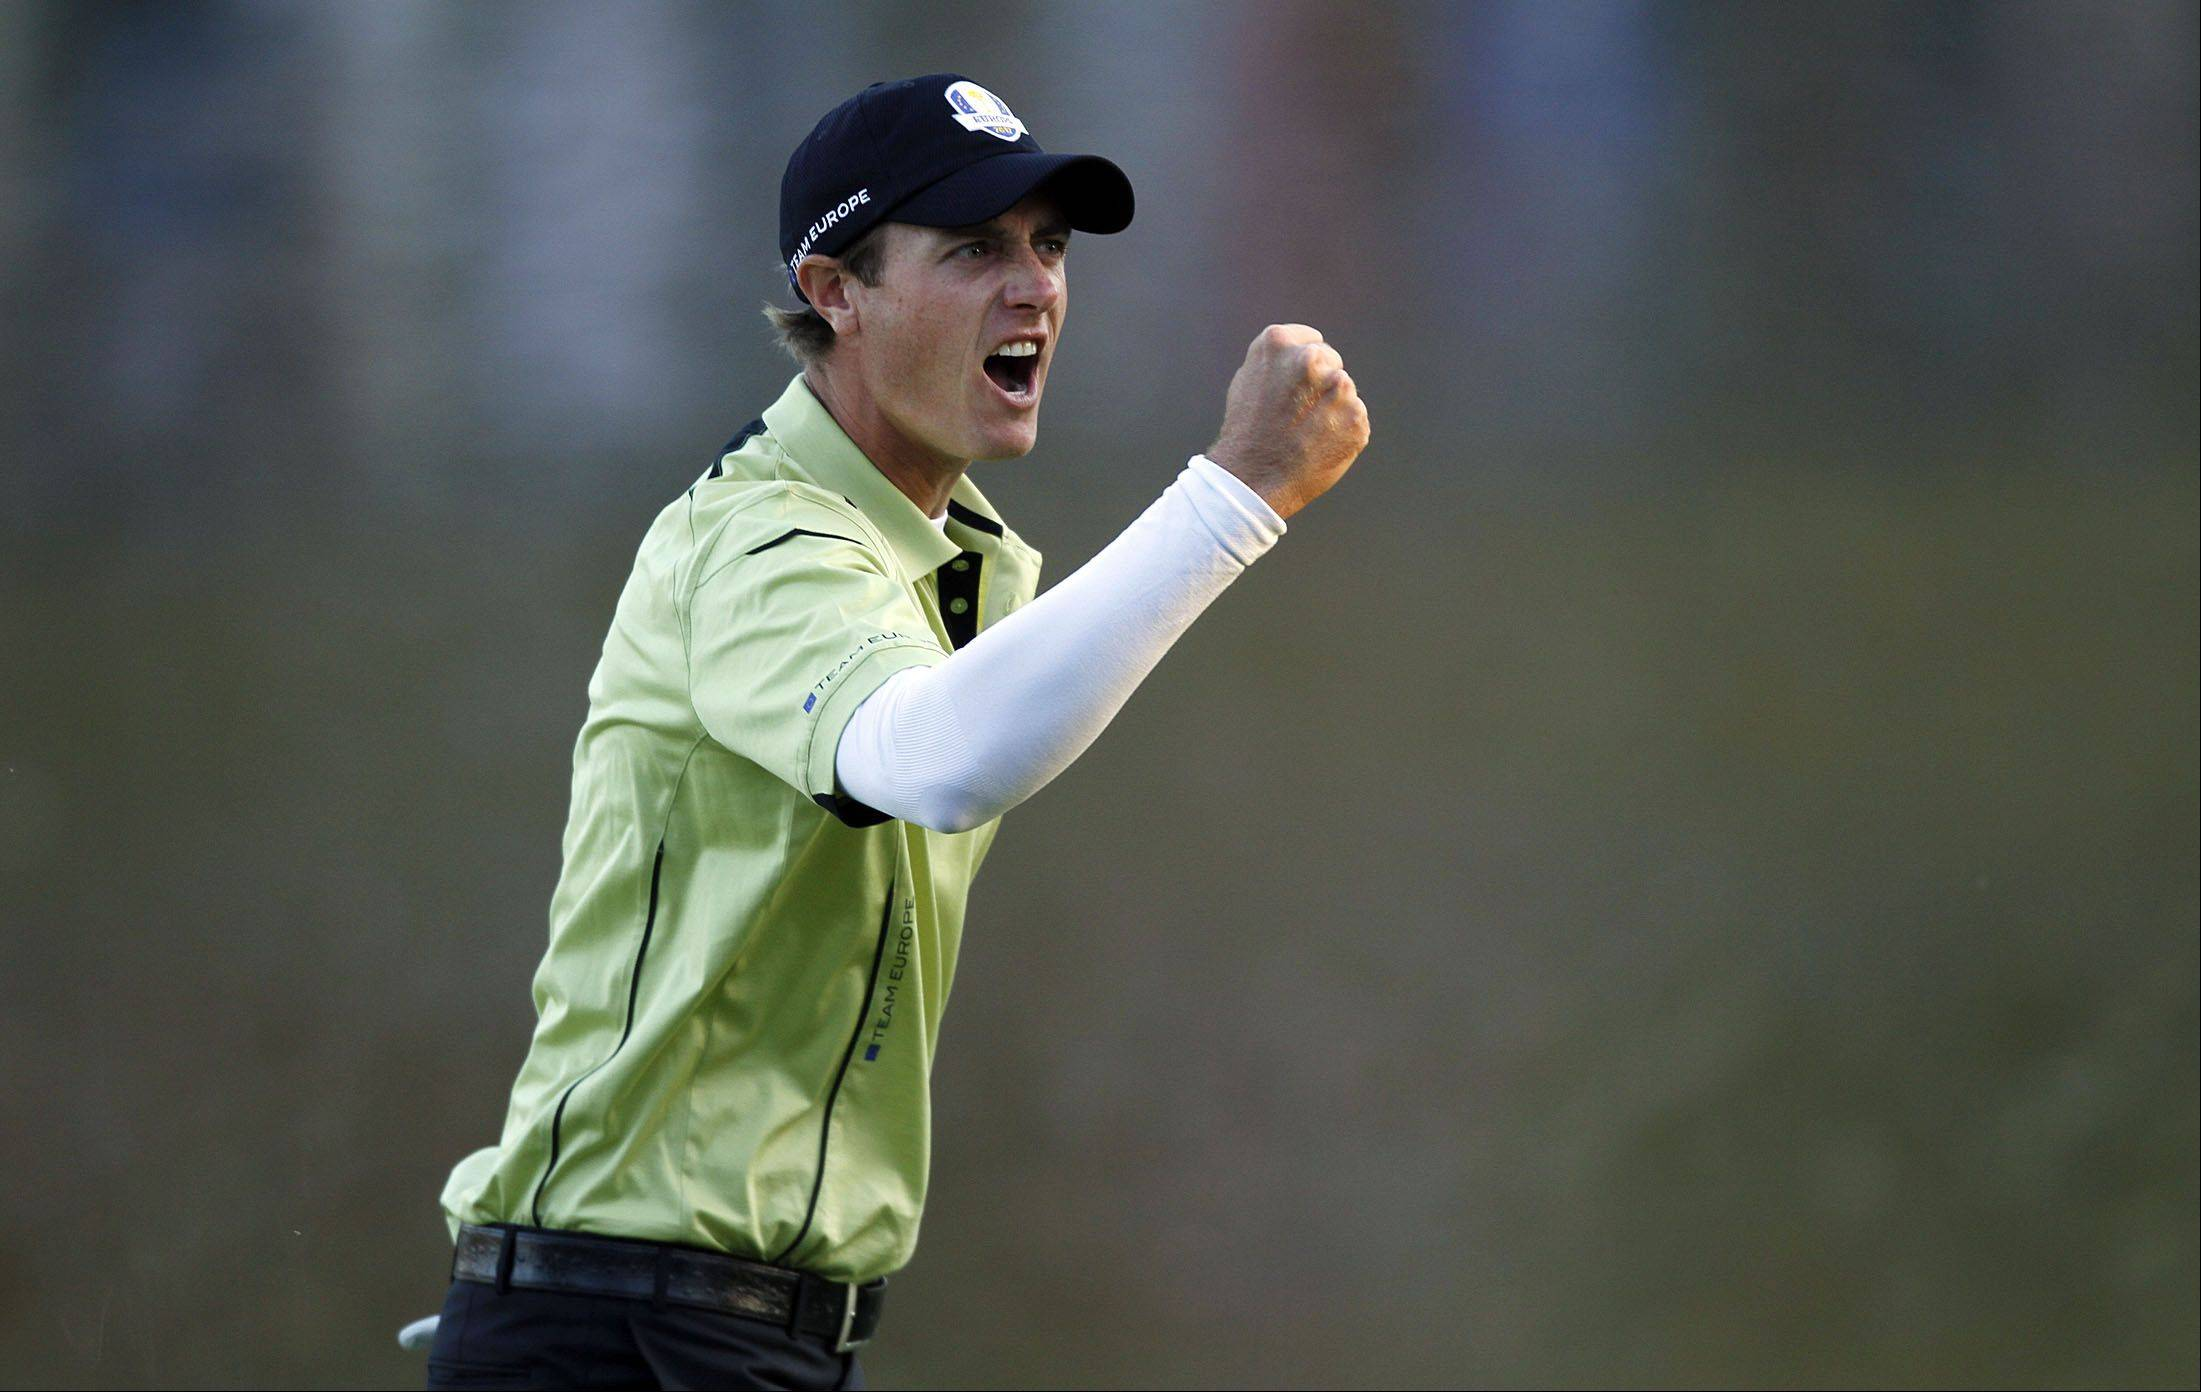 Nicolas Colsaerts, a captains pick for Team Europe, pumps his fist after sinking a birdie putt on 17 during fourball matches Friday at Medinah Country Club.